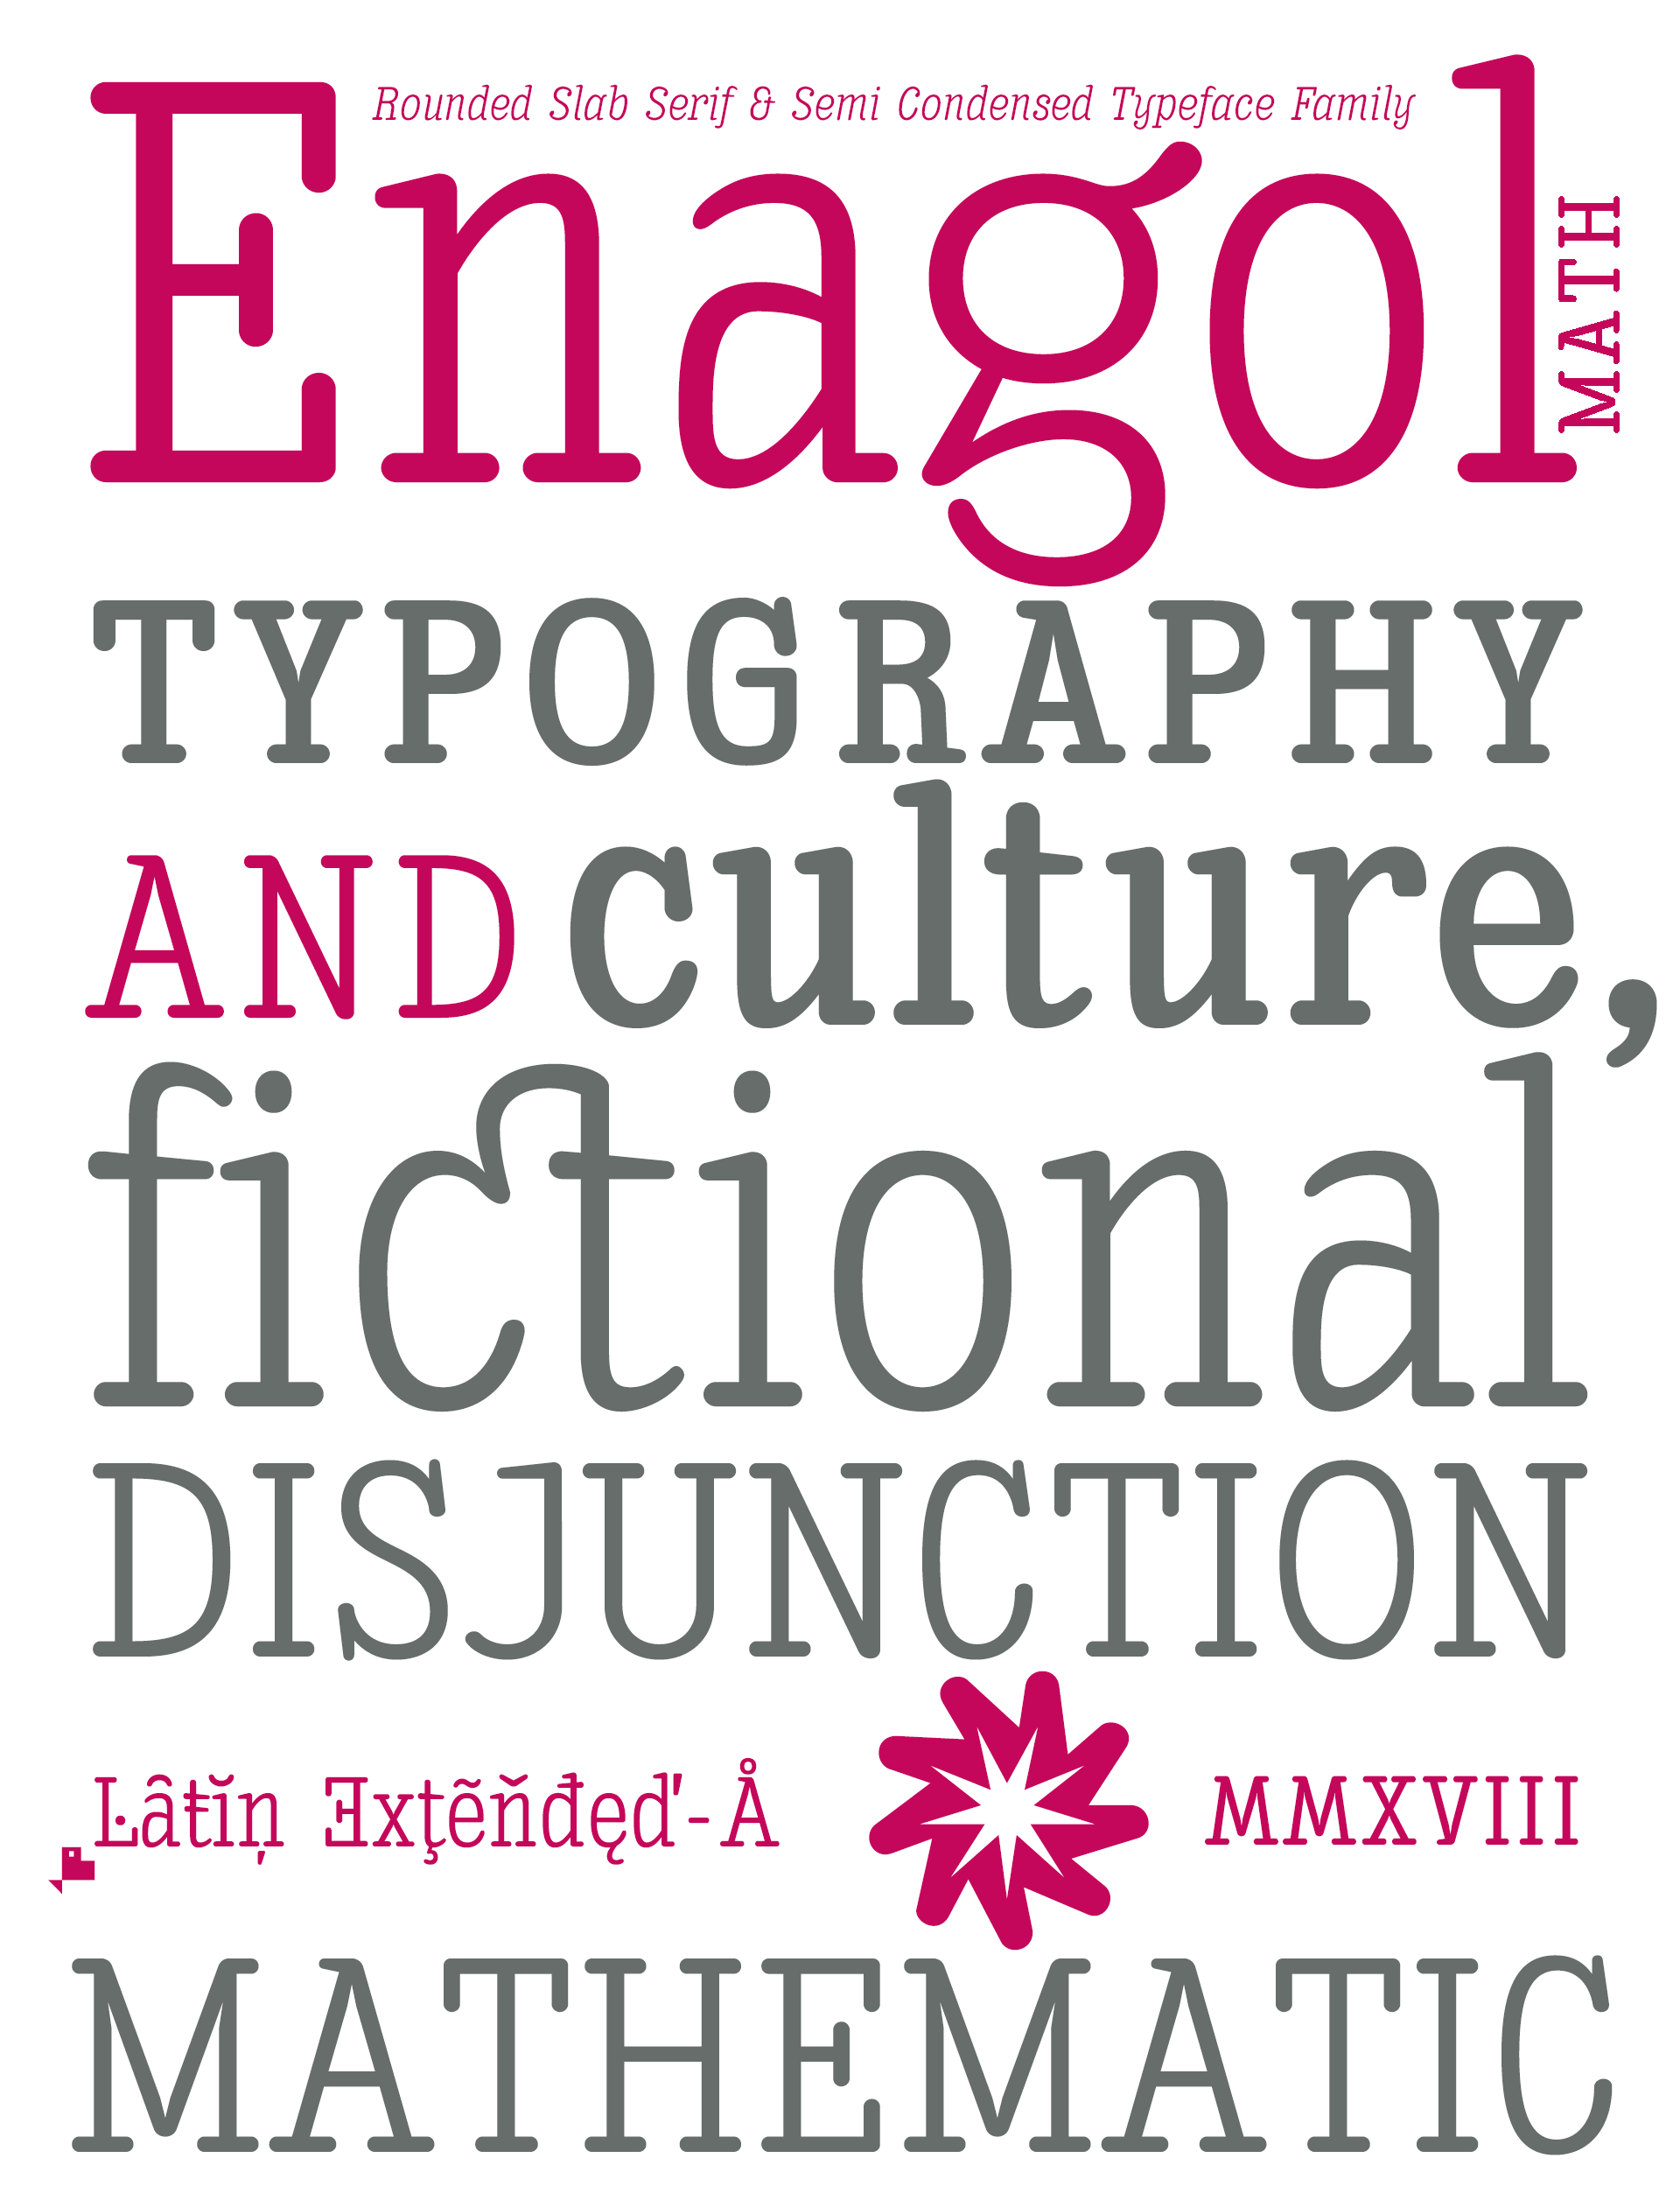 Enagol Semi Condensed Rounded Slab Typeface Family